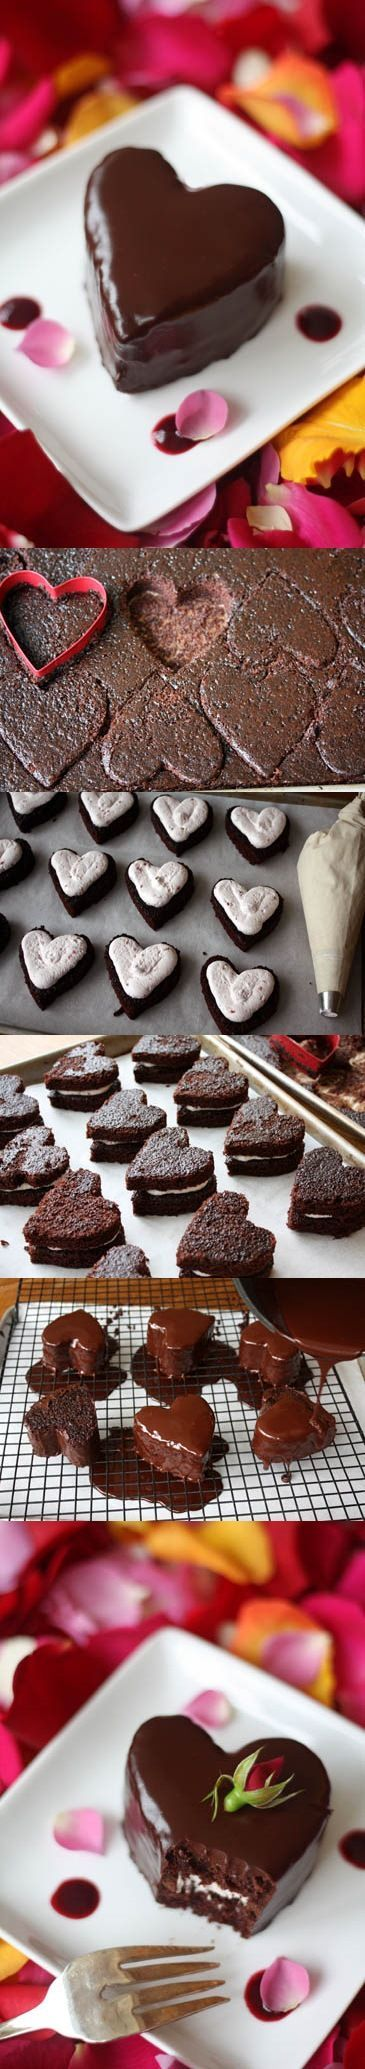 Chocolate Valentine's Day Cake If you want a delicious Valentine's Day you have to try this recipe. It has all the ingredients: chocolate, heart, love! Chocolate most handy aphrodisiac. Having an important content of cocoa, chocolate contains an alkaloid – theobromine – which when  is consumed in large quantities has a powerful aphrodisiac effects. In conclusion you need a cake with chocolate in menu for this special day!